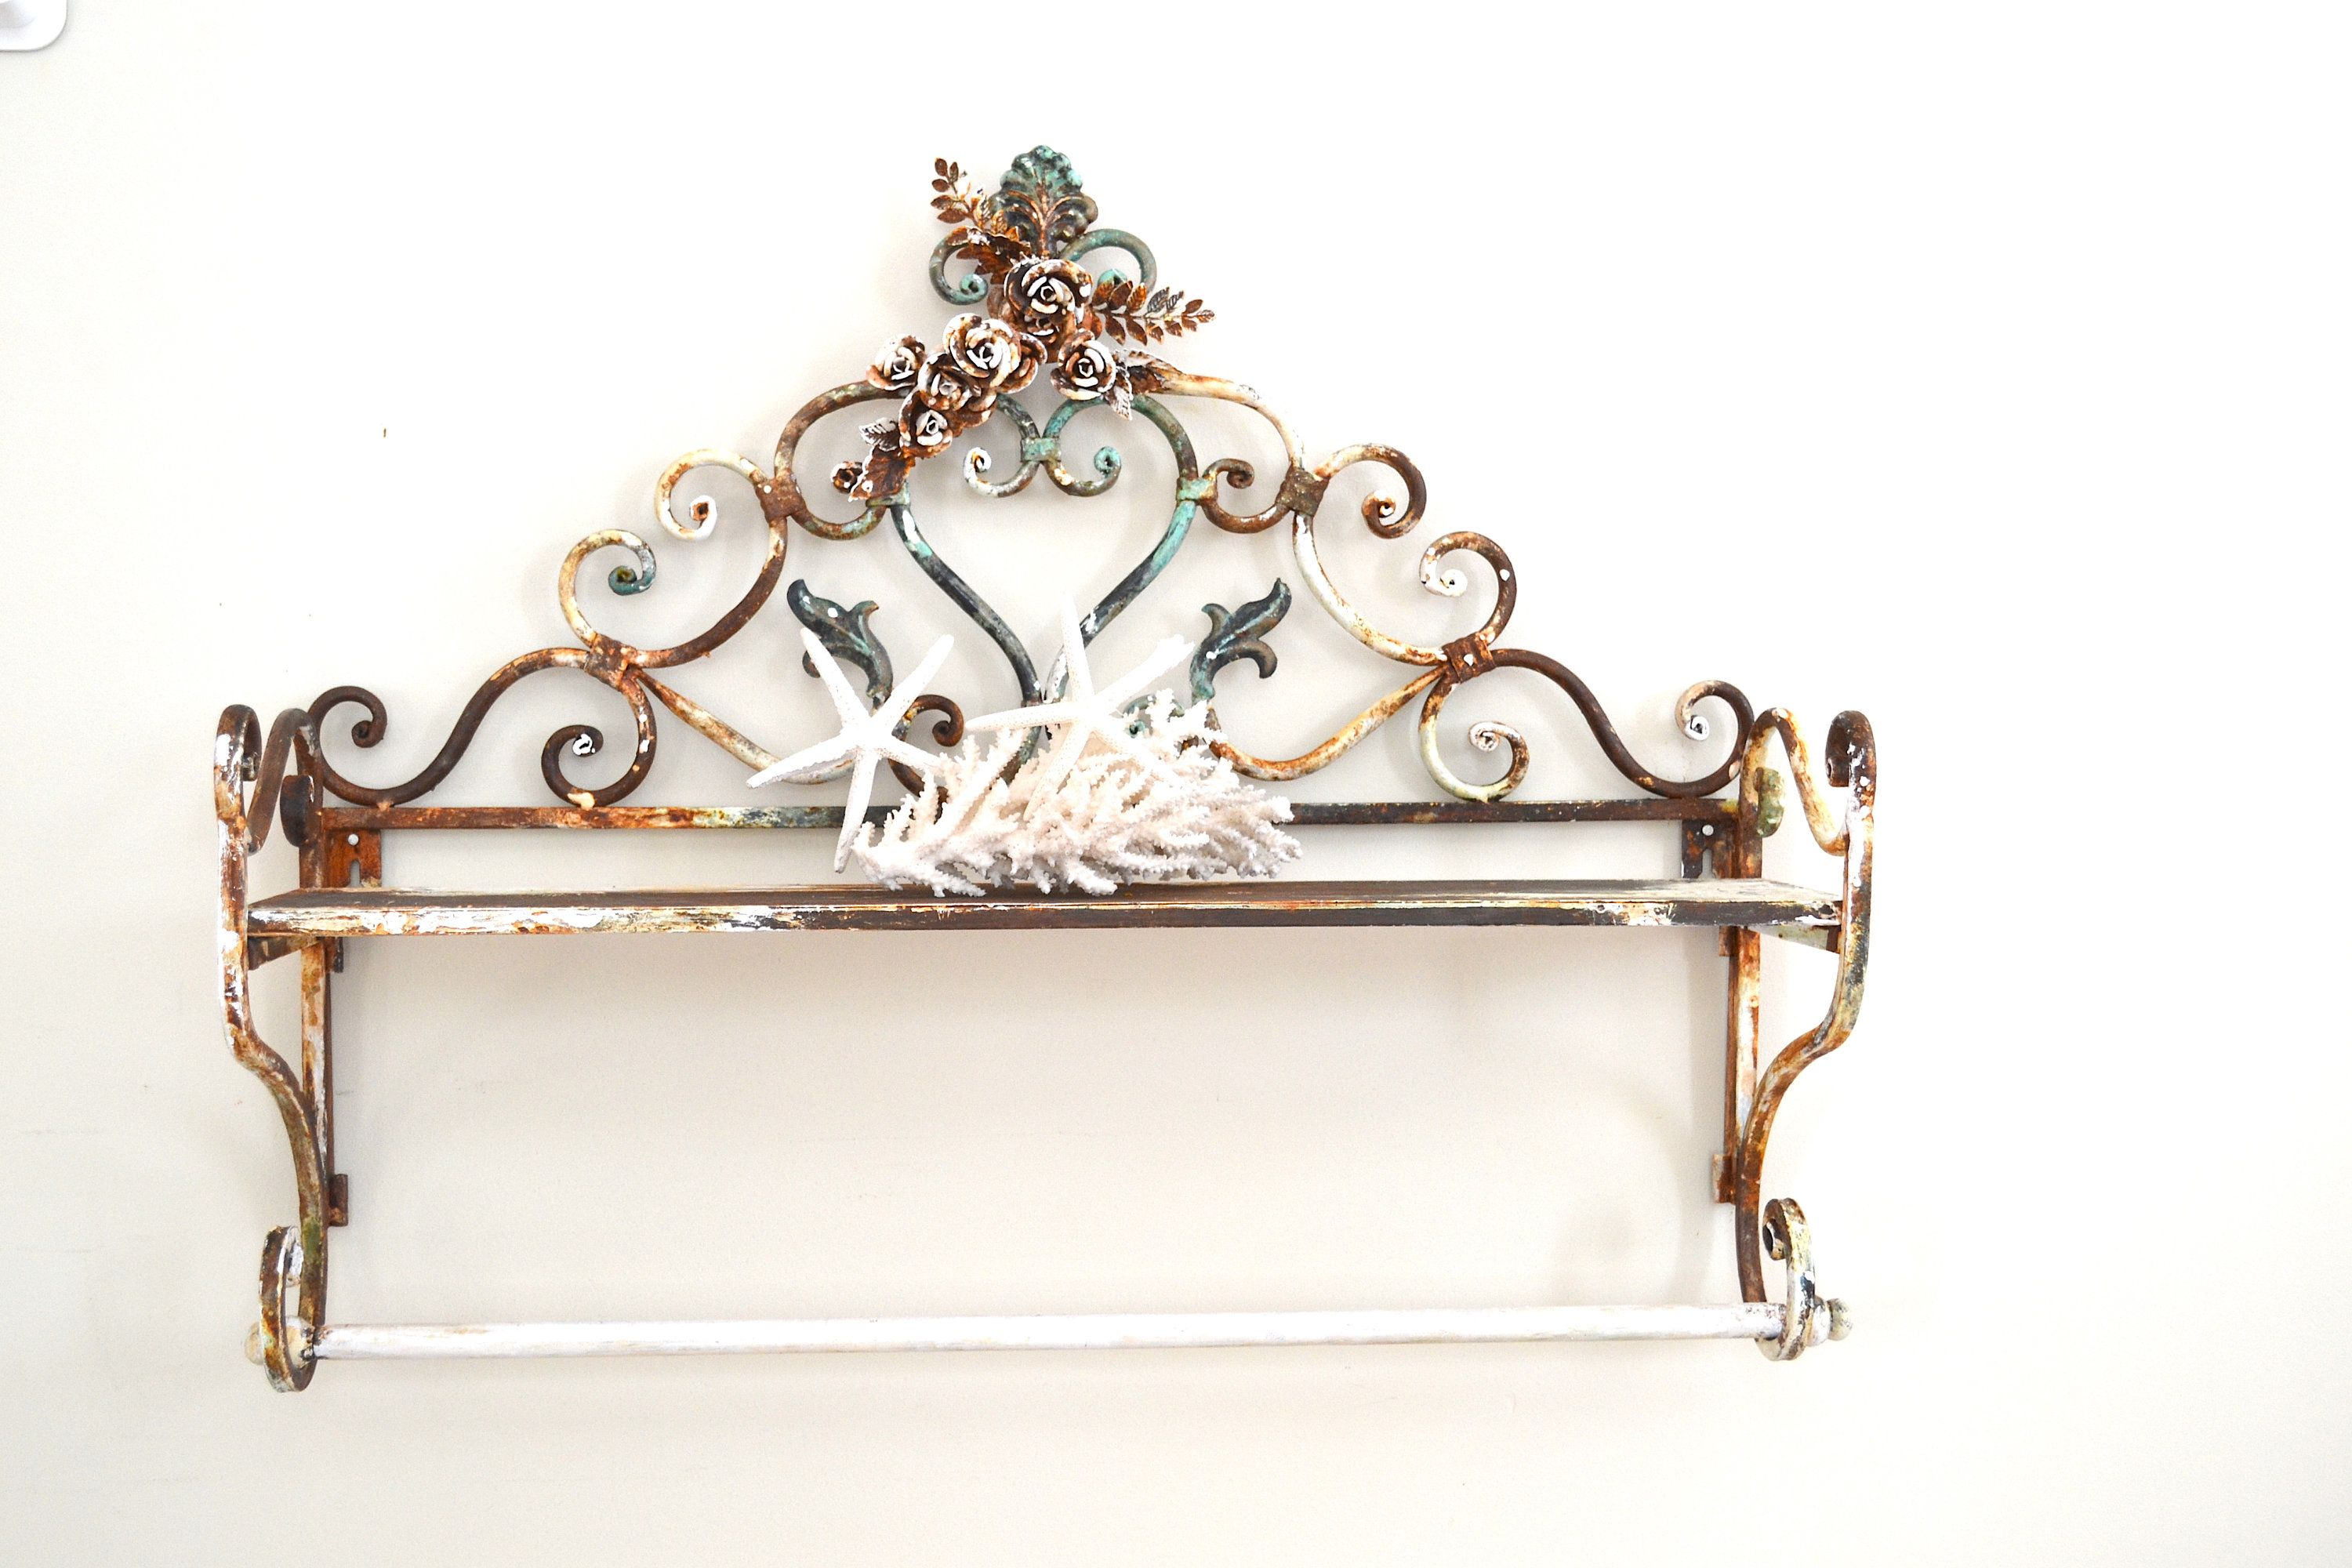 Heavy Duty Weight Wrought Iron Wall Quilt Rack Blanket Rack Etsy In 2020 Iron Wall Metal Roses Wall Quilts